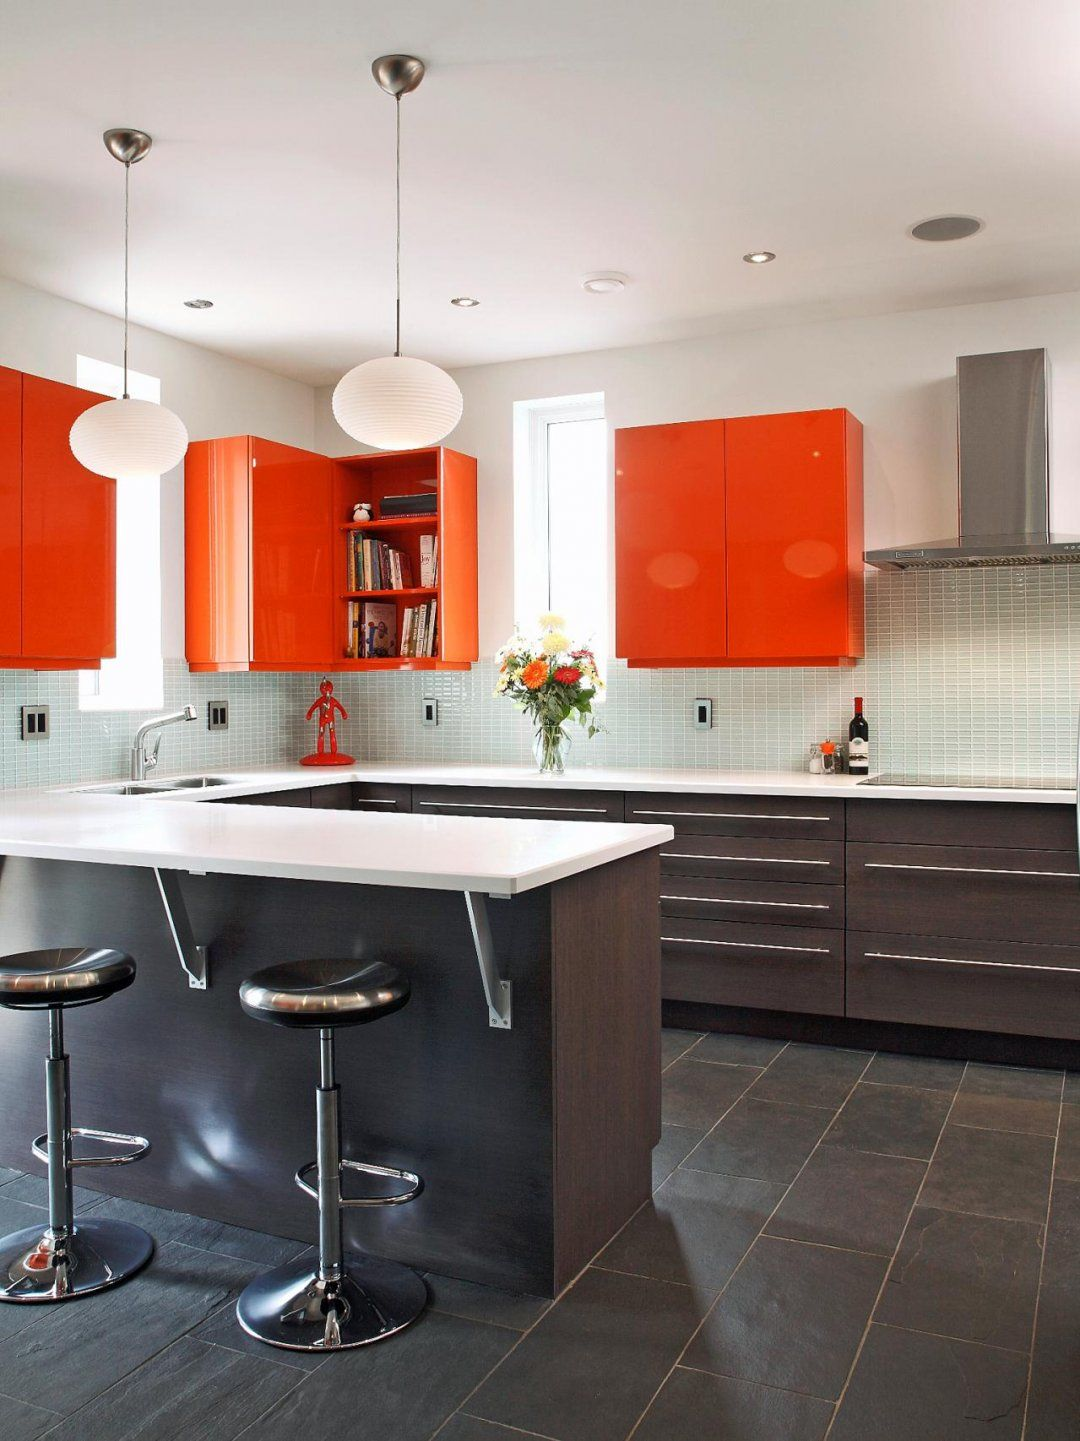 Maple Cabinets Turned Orange Kitchen Decorating Ideas And Blue Decor Yellow Cabinet Accents Popular Kitchen Colors Kitchen Design Color Kitchen Cabinet Remodel